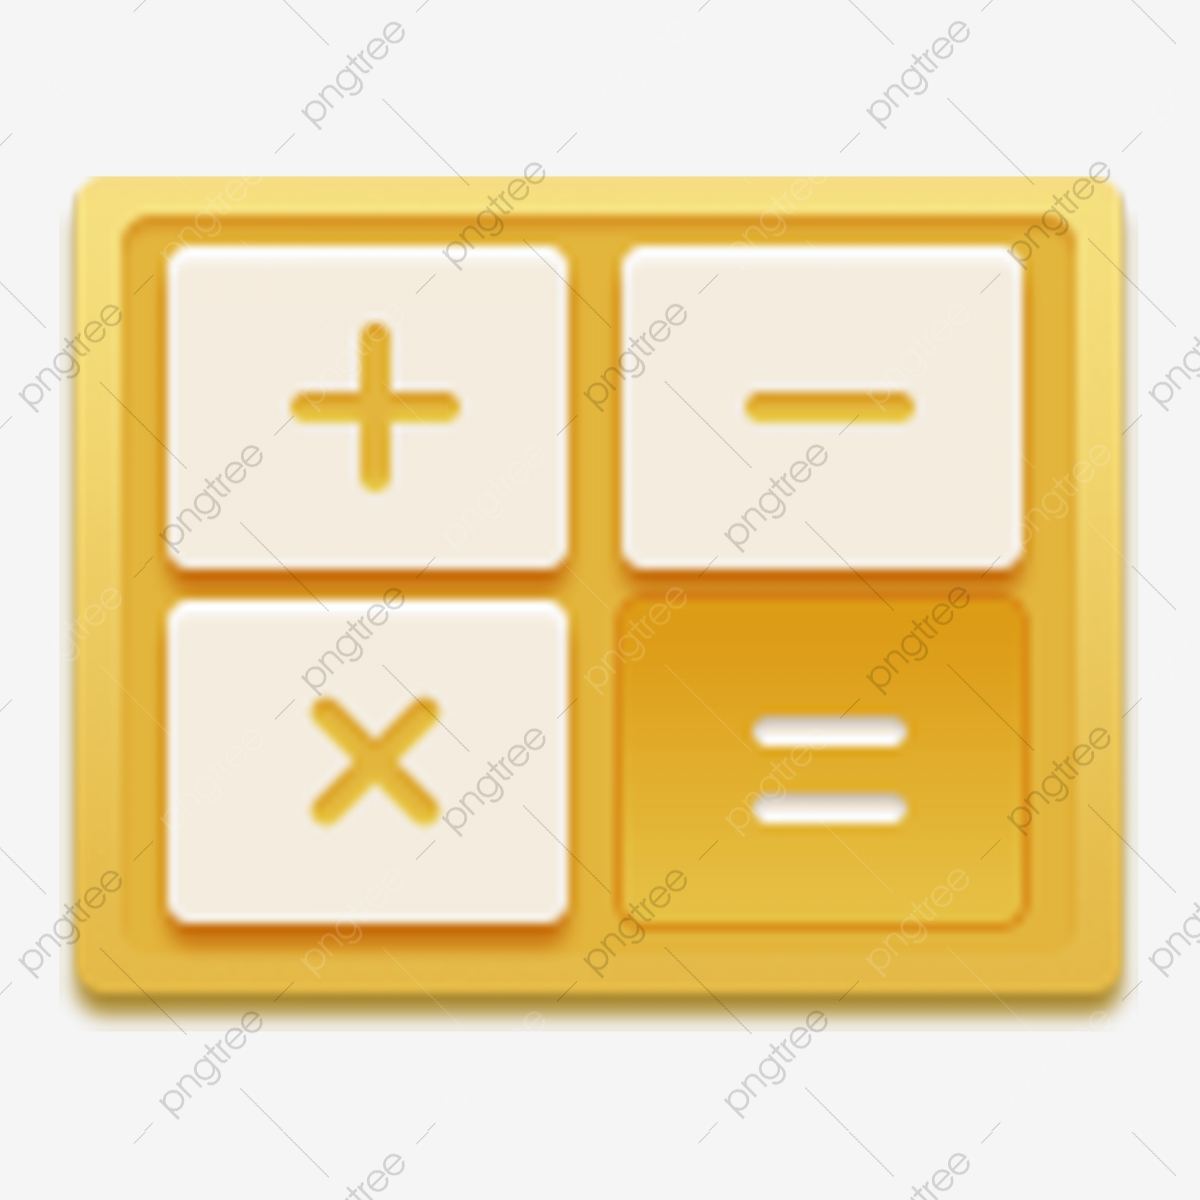 Free Calculator Cliparts, Download Free Clip Art, Free Clip Art on Clipart  Library